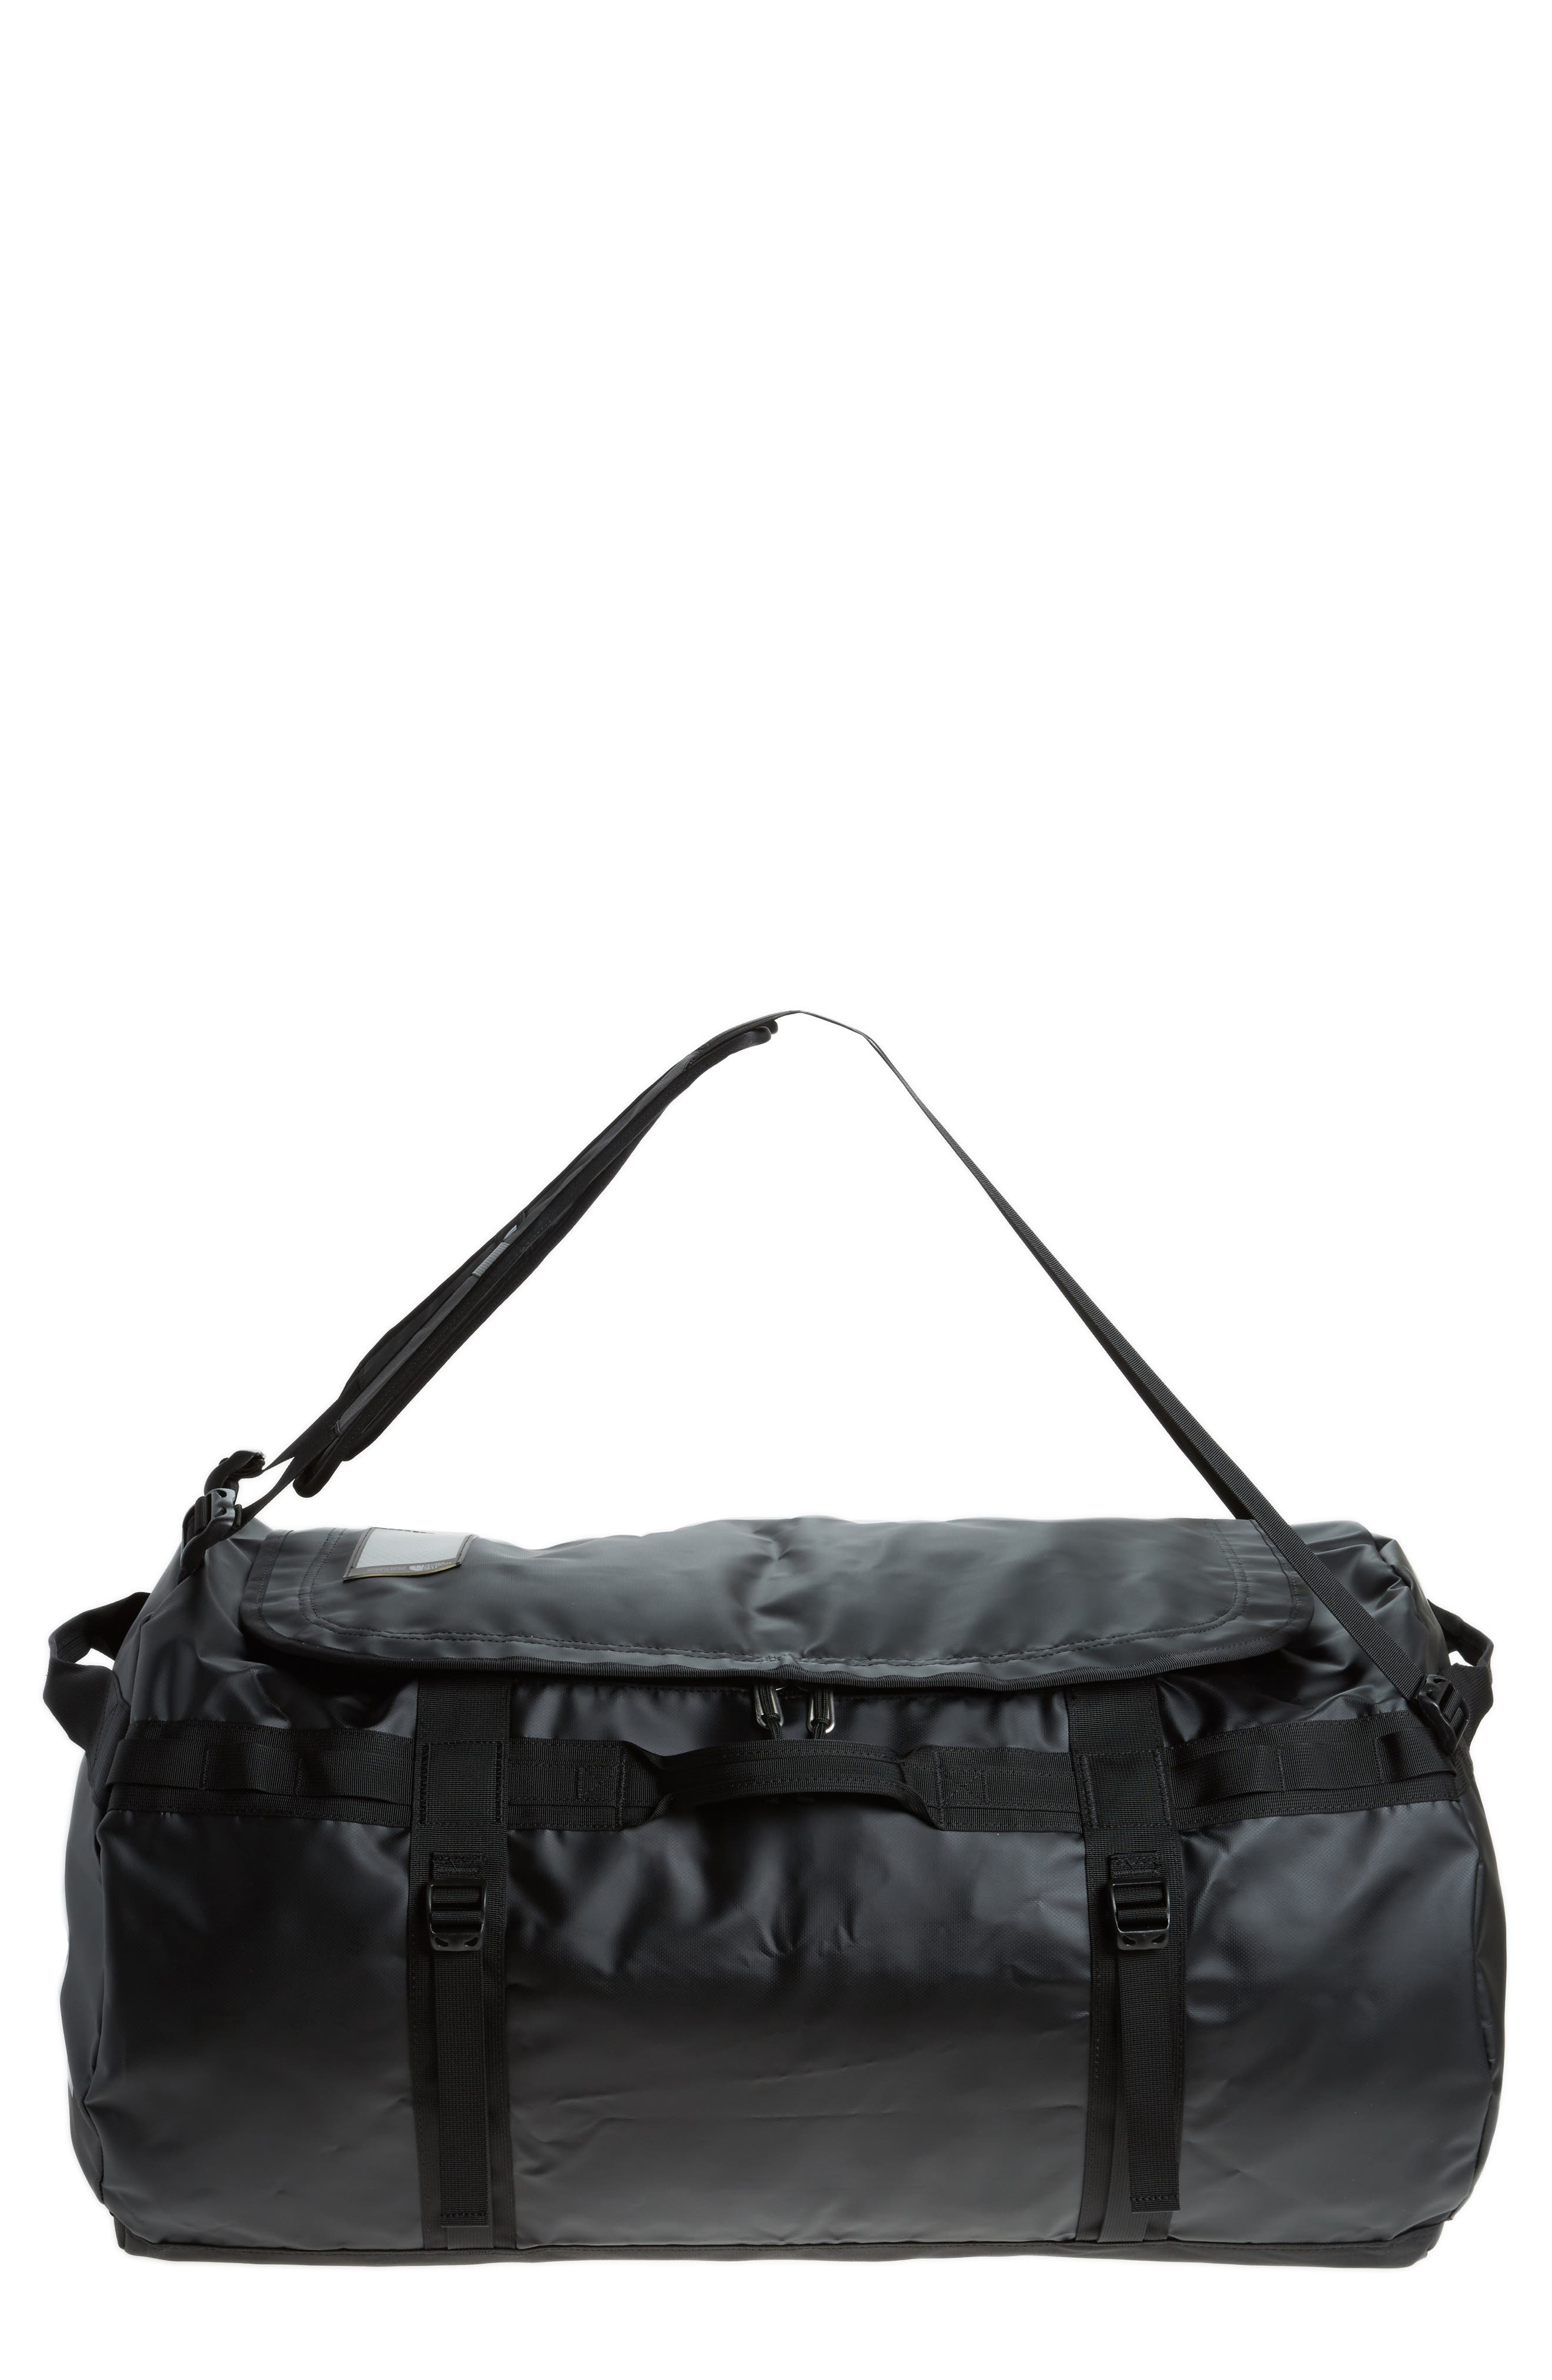 Base Camp XL Duffel Bag,                         Main,                         color, Black